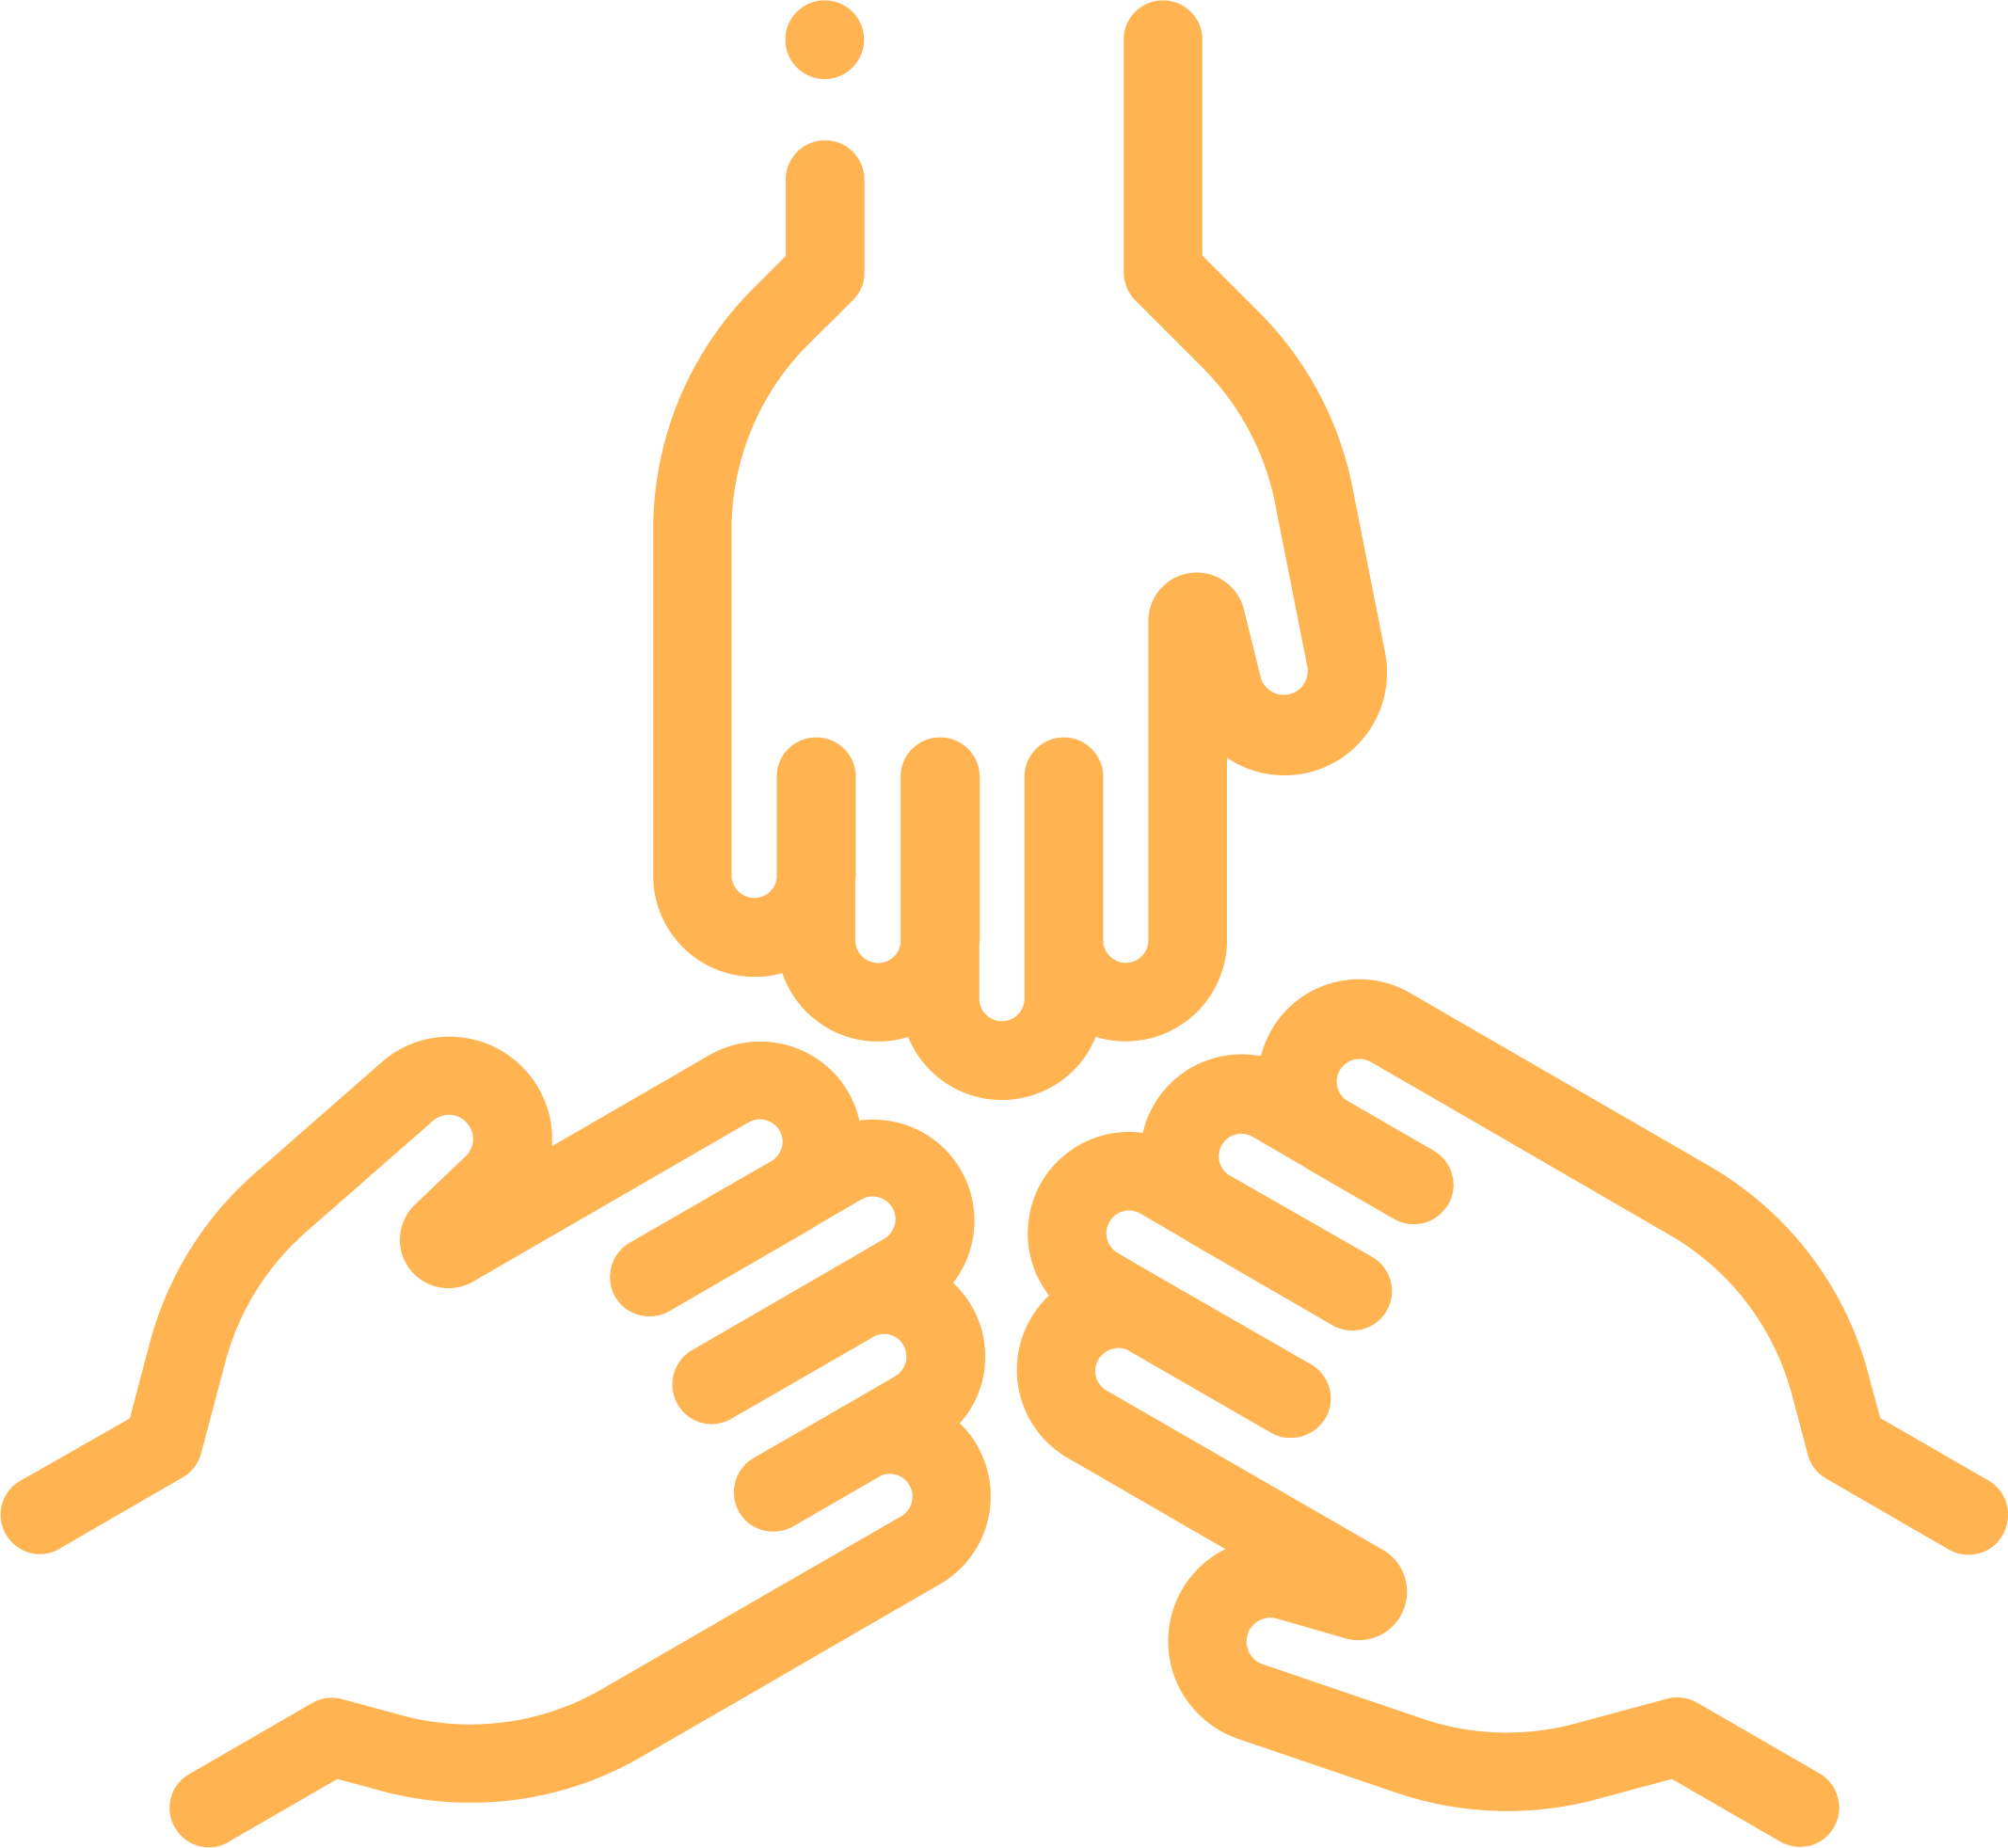 UWCM yellow Equity & Social Justice outline icon 3 hands together